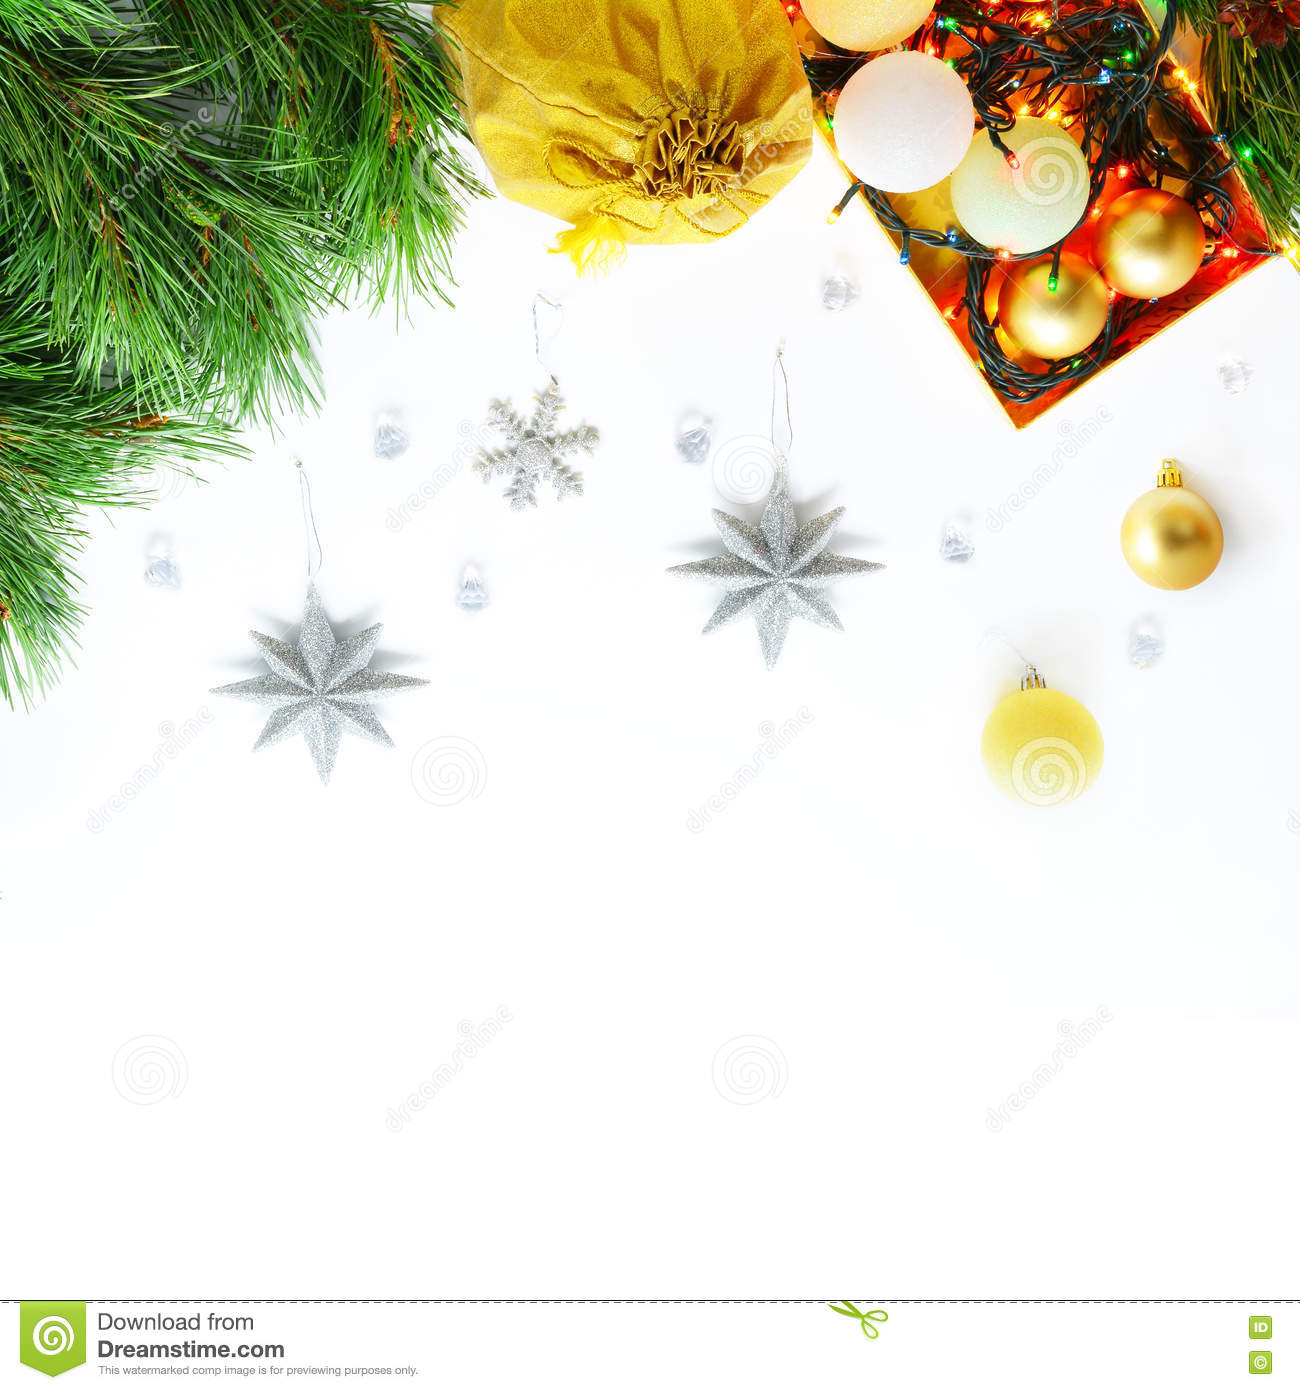 Christmas and new year greeting card stock photo 74579152 megapixl christmas and new year greeting card kristyandbryce Gallery